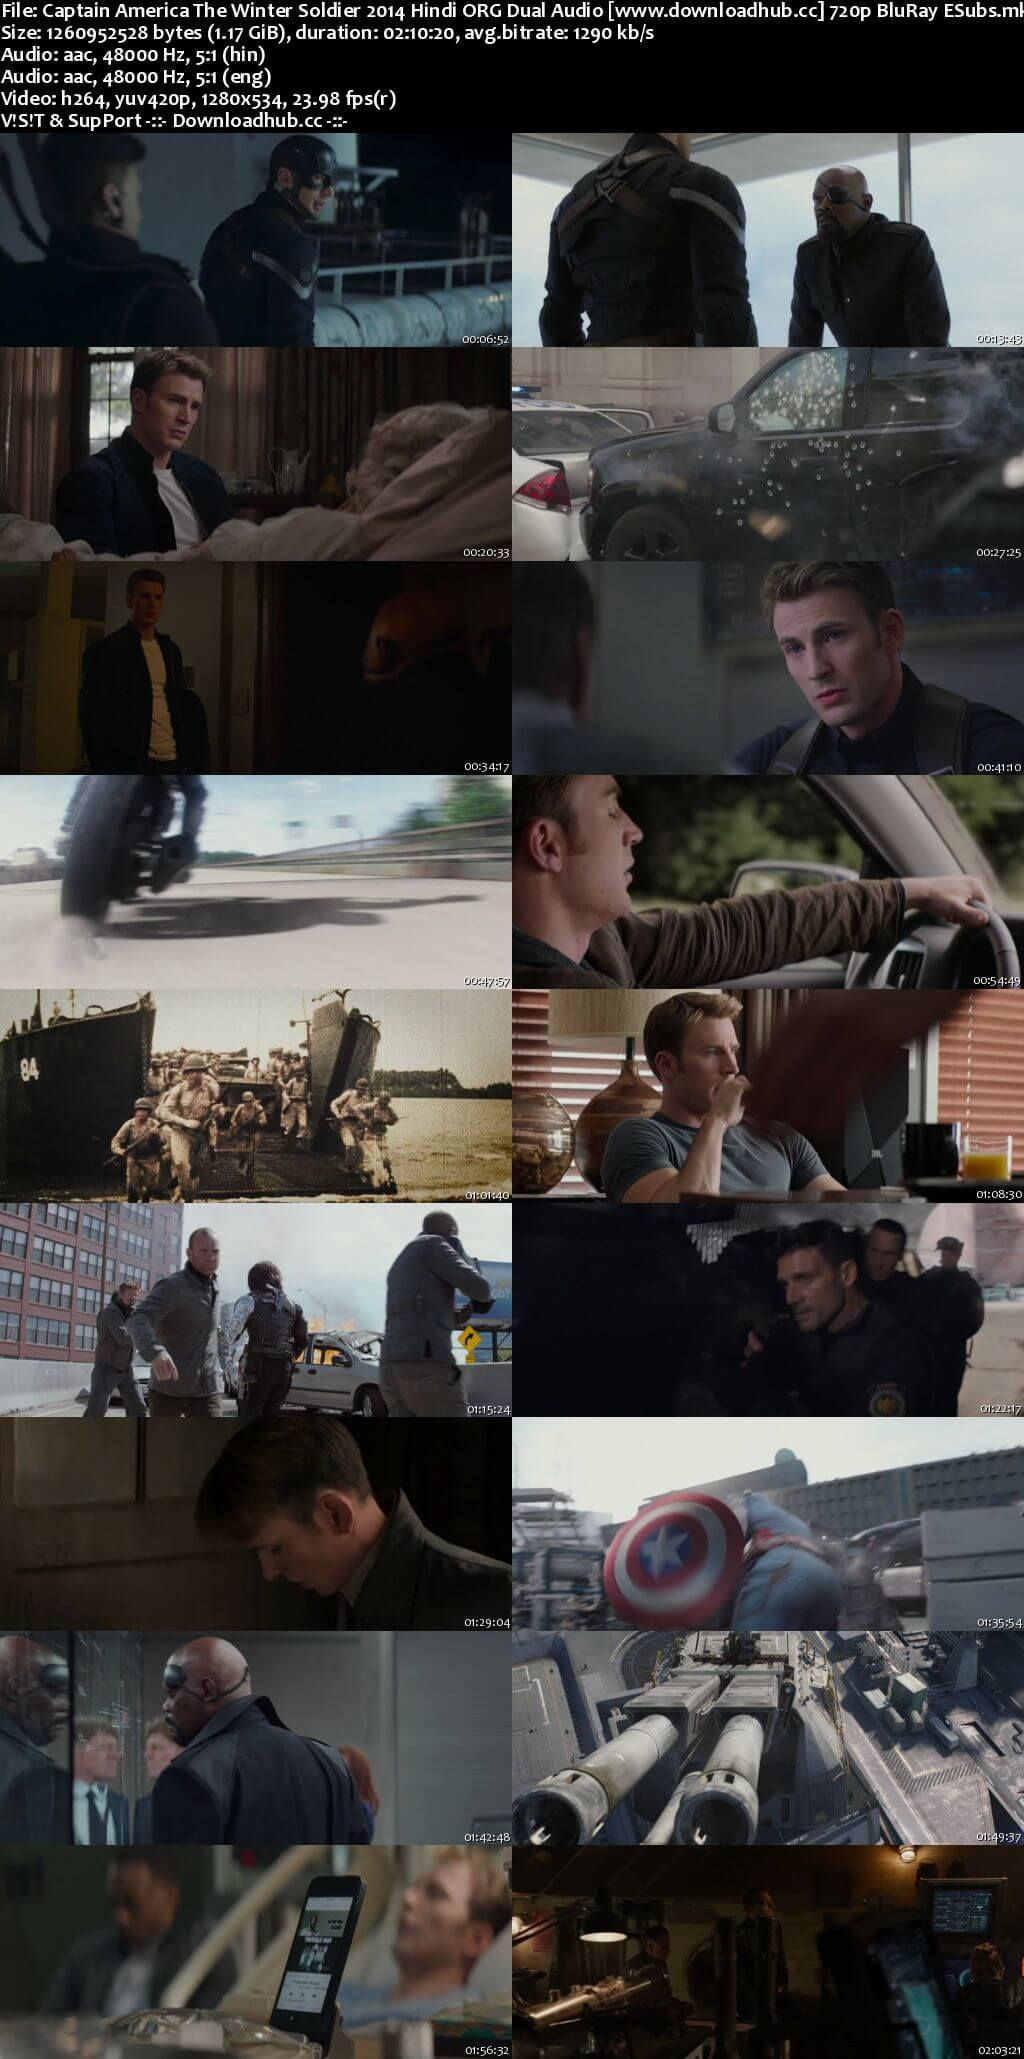 Captain America The Winter Soldier 2014 Hindi ORG Dual Audio 720p BluRay ESubs